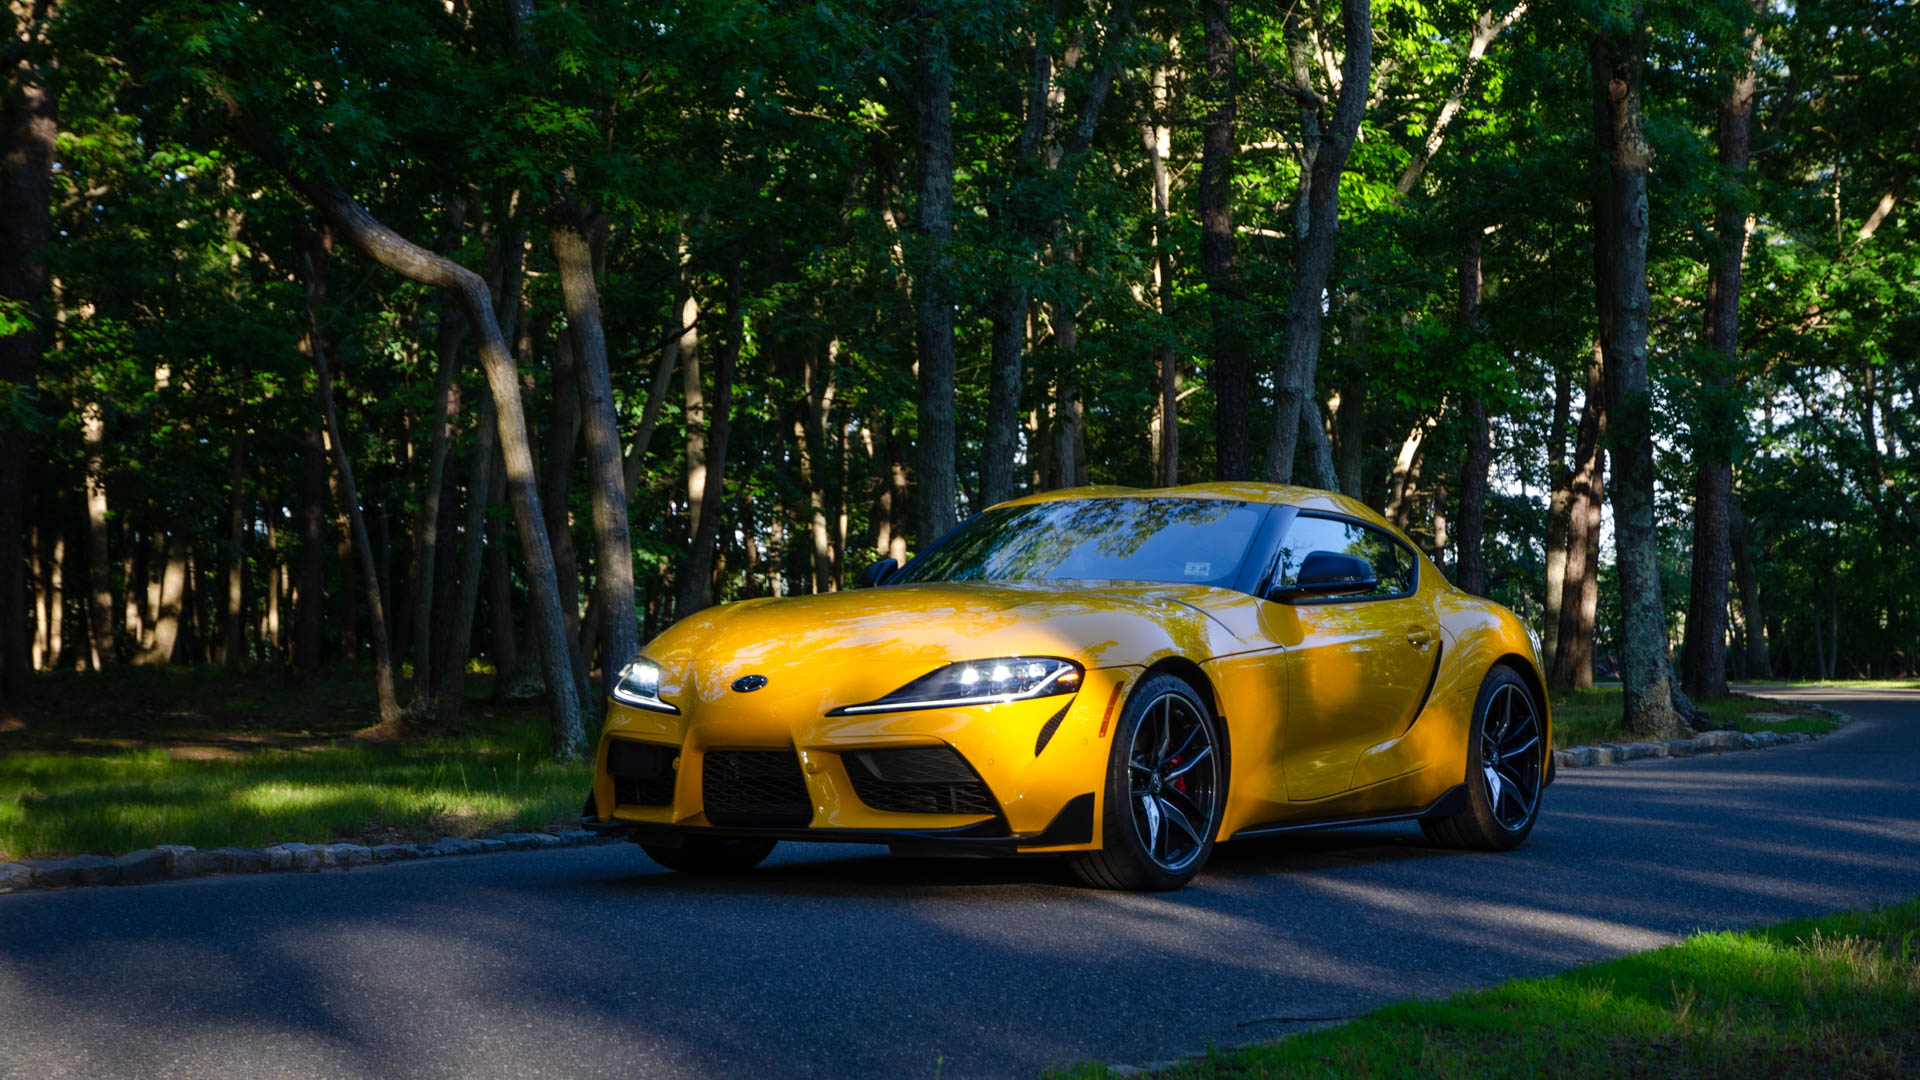 VIDEO: BMW-Powered Toyota Supra is the Fastest Toyota Supra